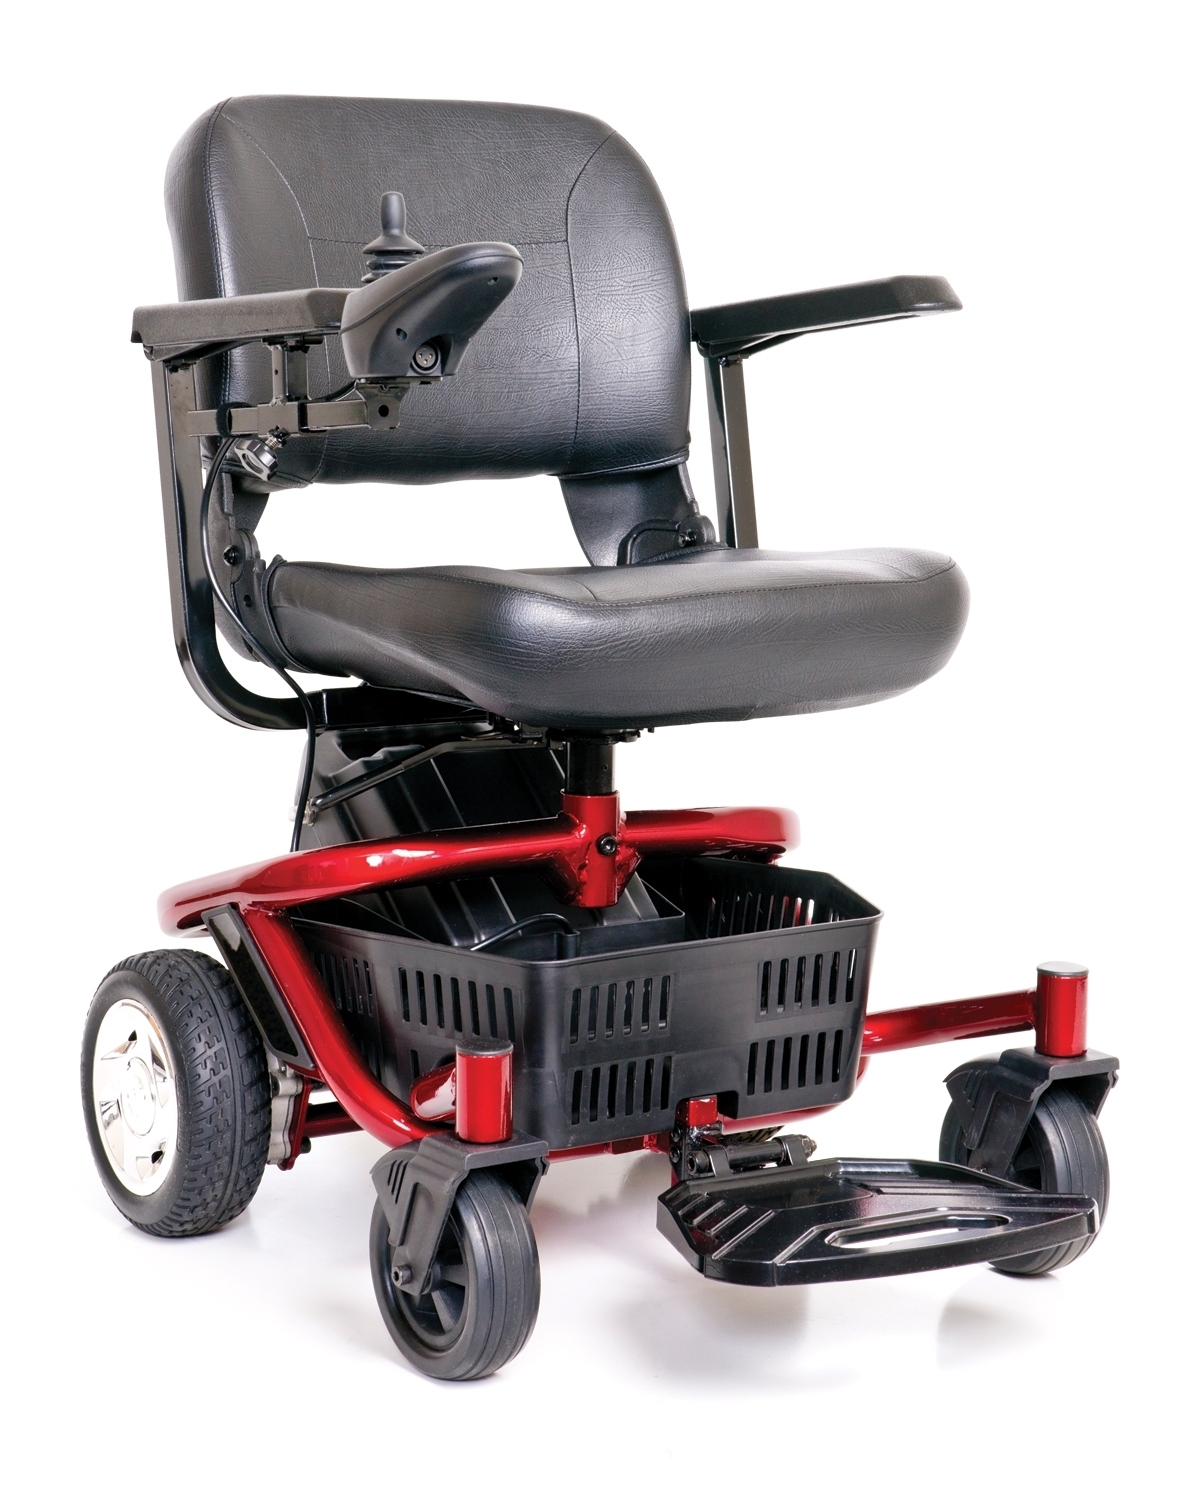 power wheelchair batteries medicare the chair salon gp162 literider ptc: mobile mobility services: rochester ny golden